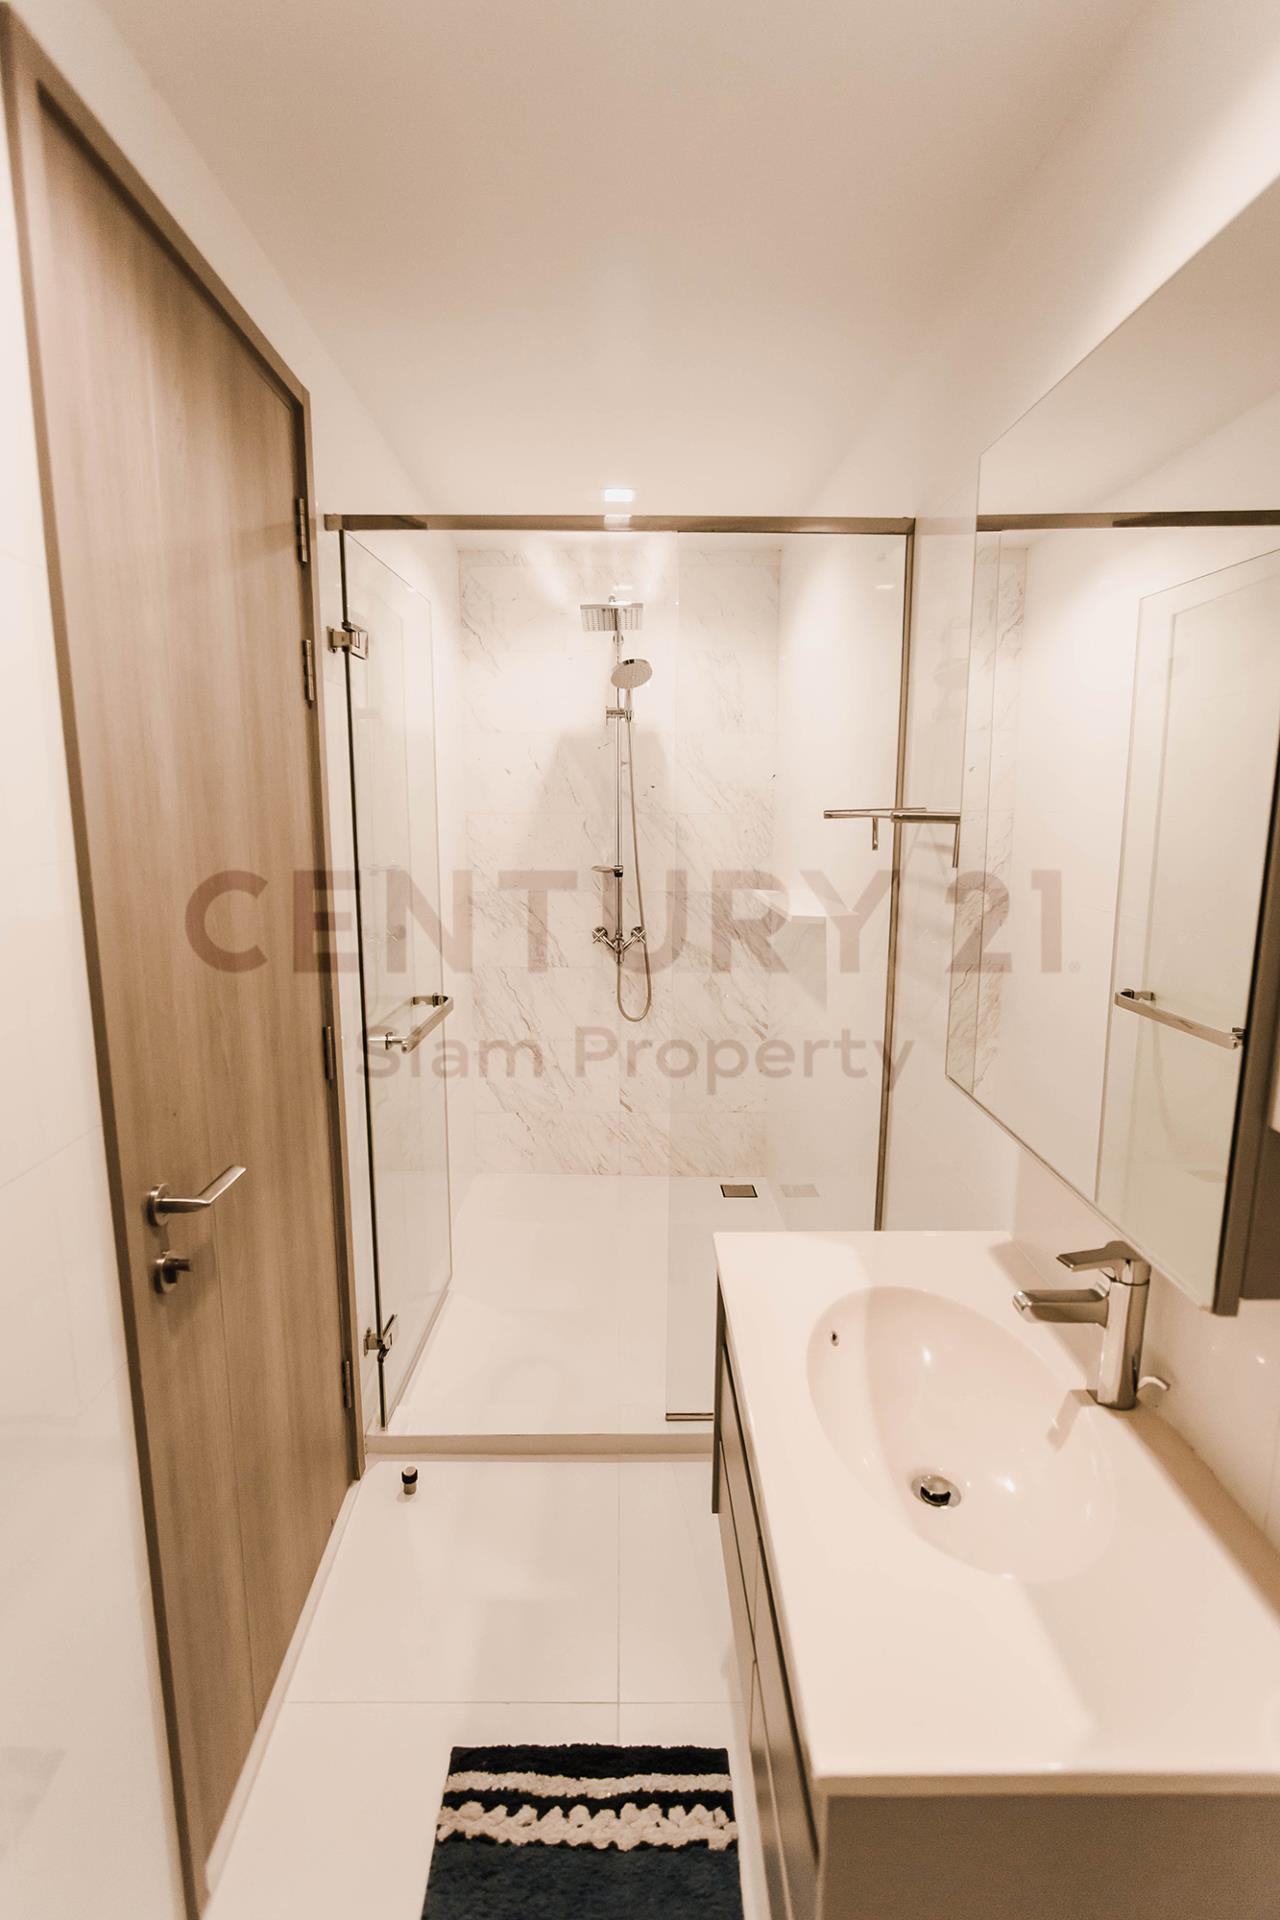 Century21 Siam Property Agency's HQ 16